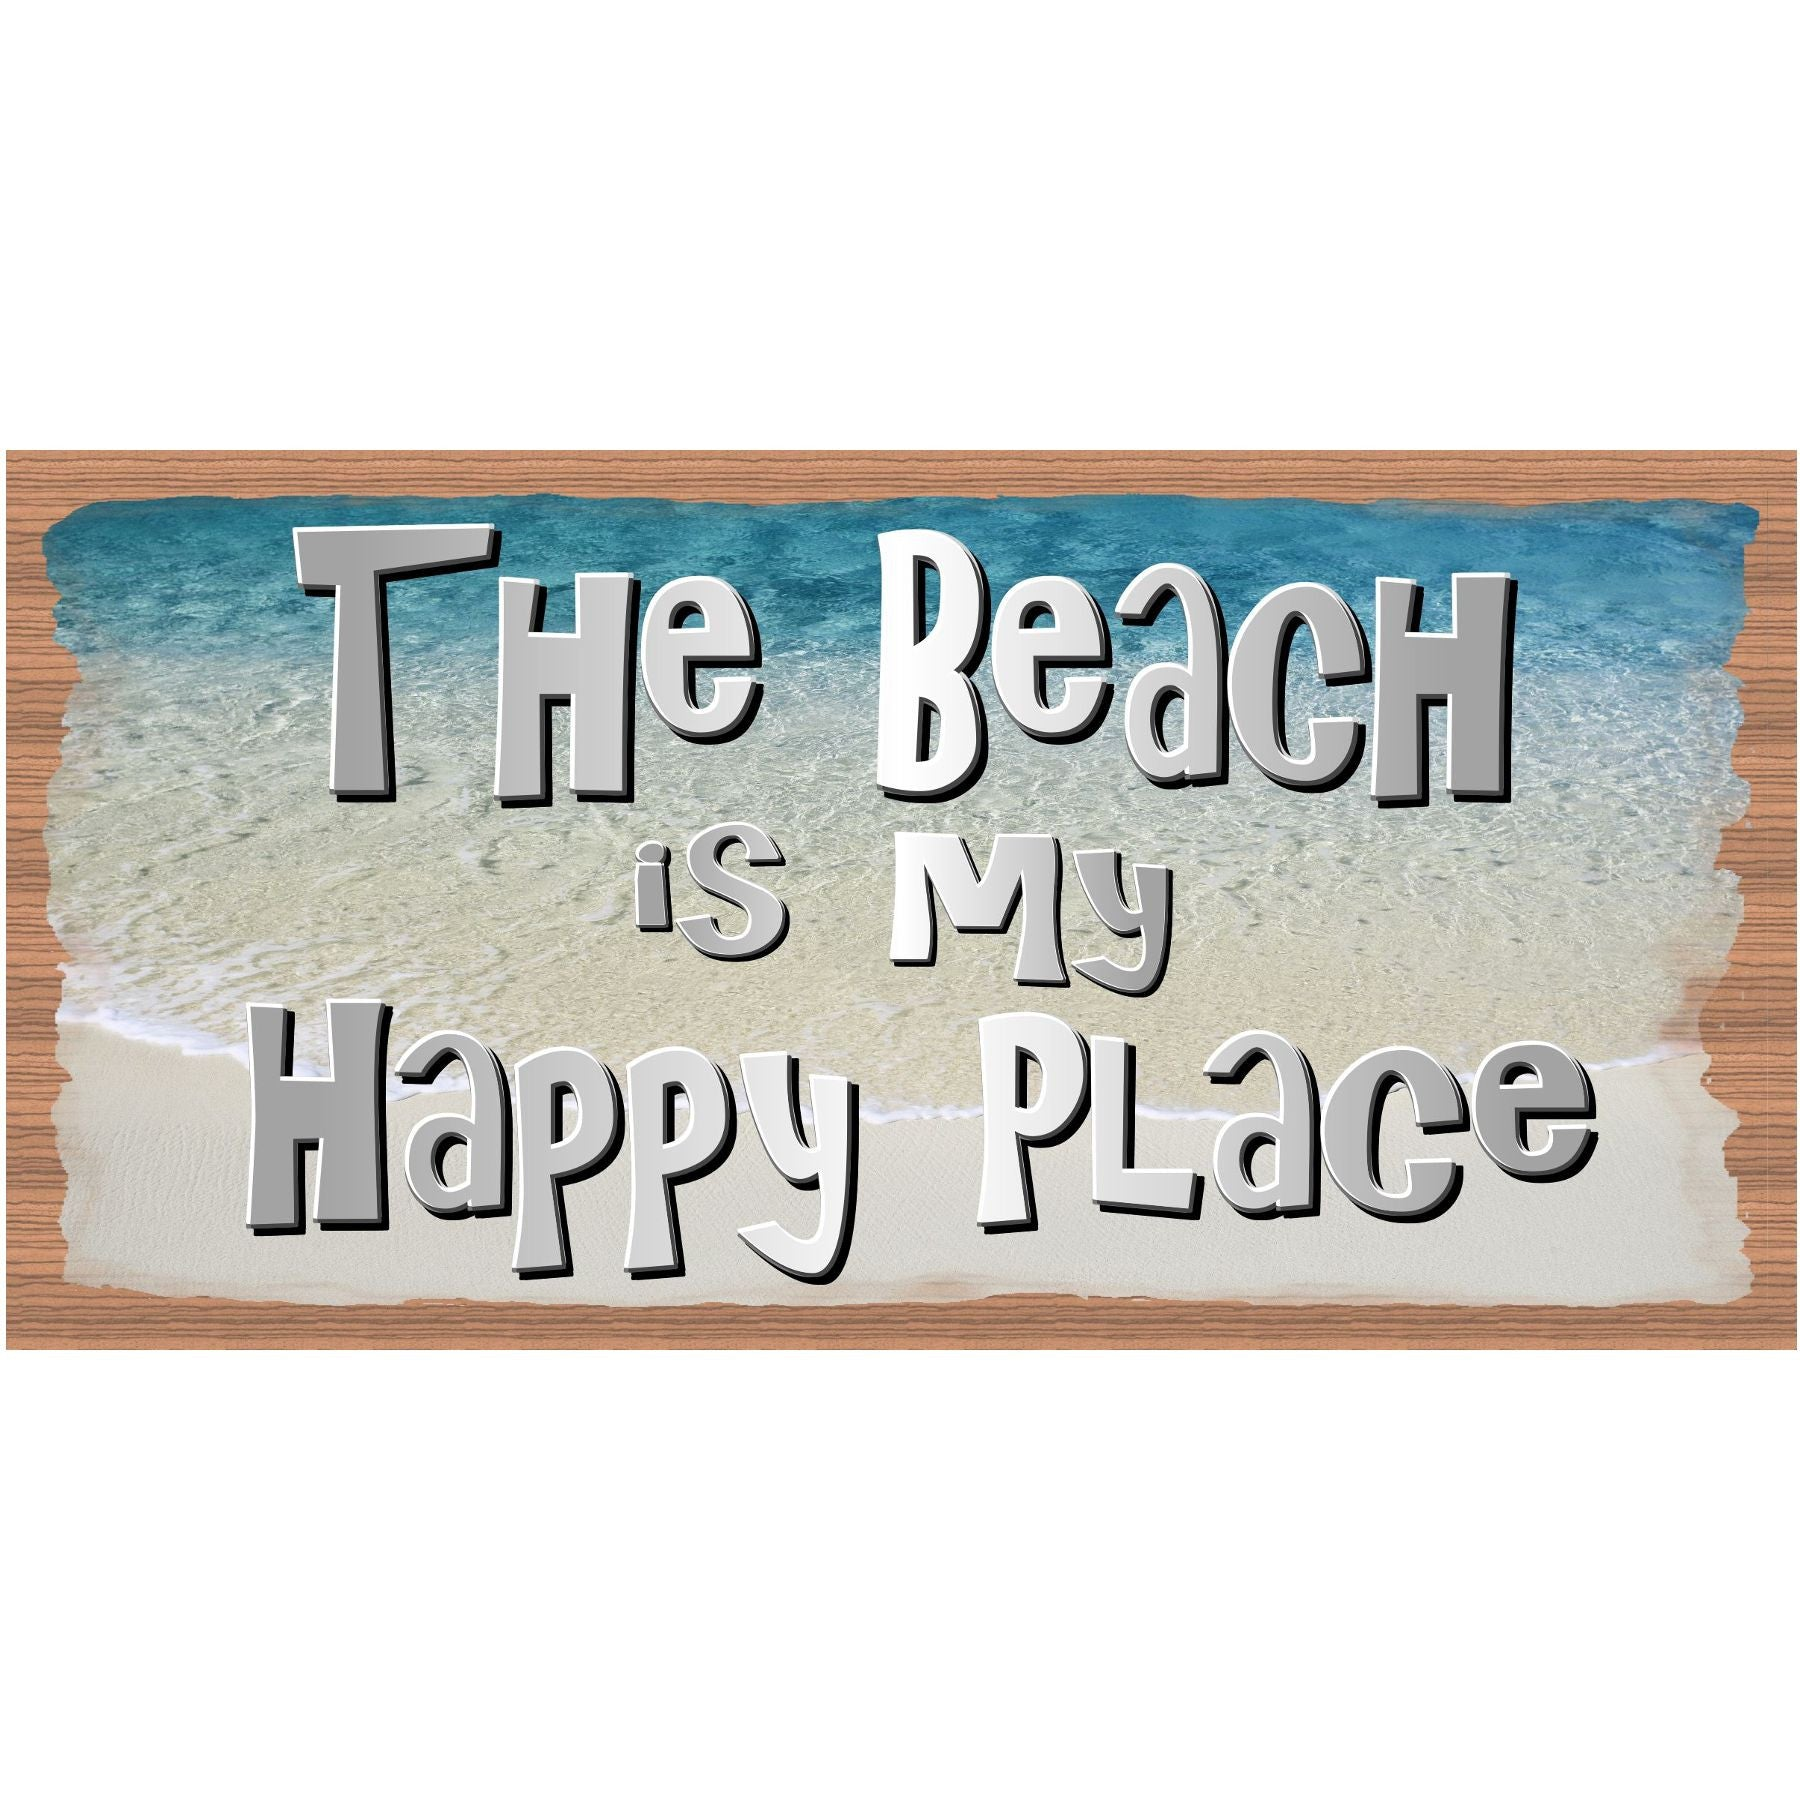 Beach Wood Signs -The Beach is My Happy Place plaque - GS 1504 -Tropical Sign - Beach decor